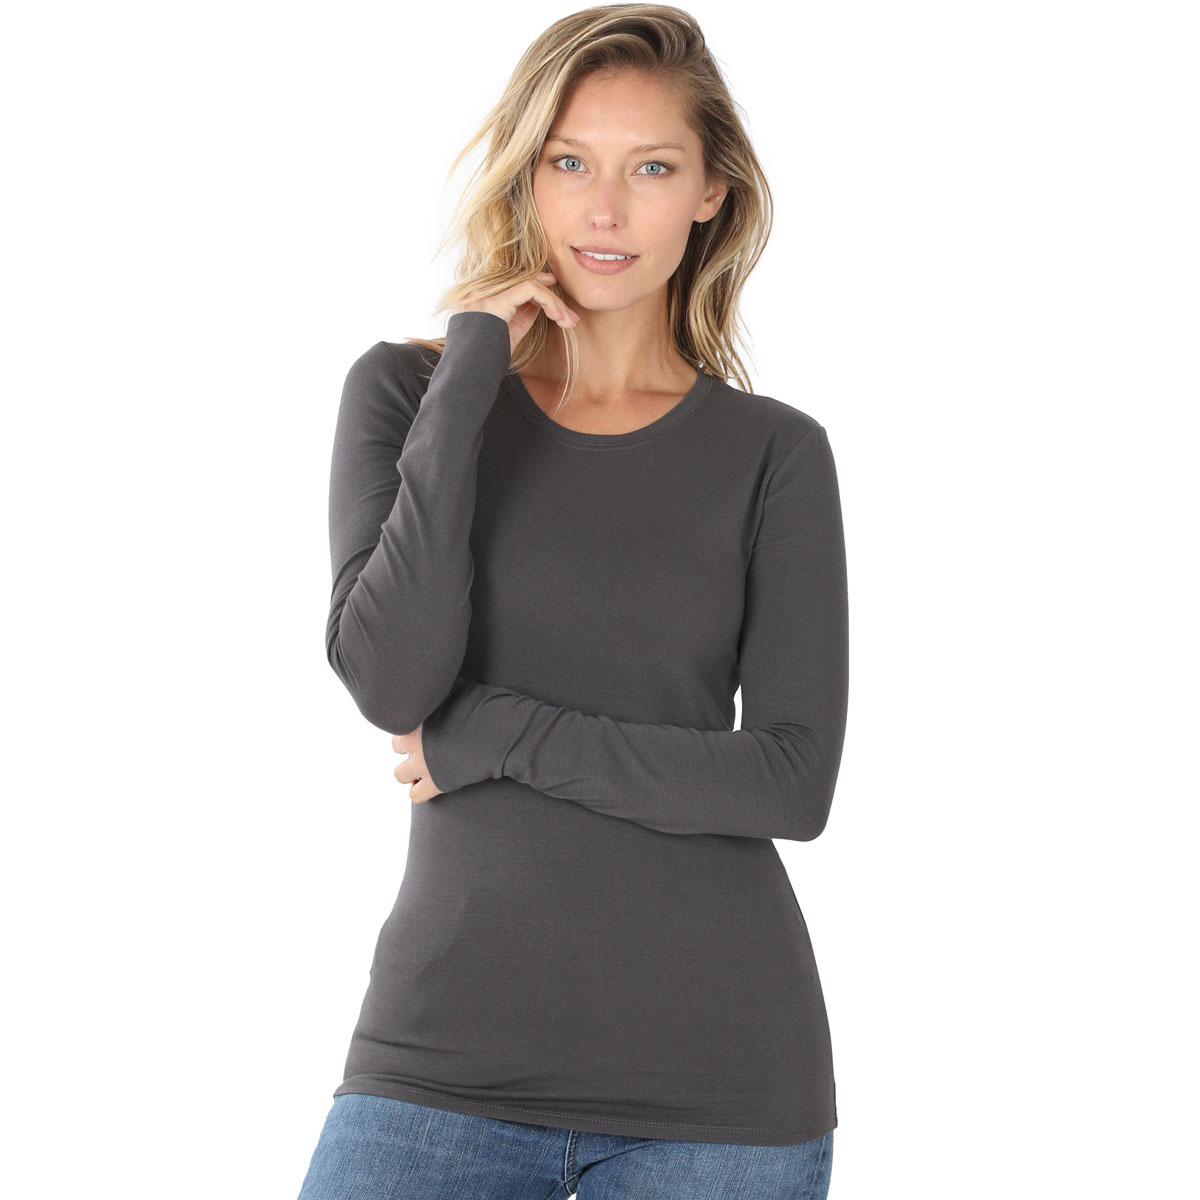 Tops - Cotton Slim Fit Long Sleeve Round Neck 3320 - ASH GREY Cotton Long Sleeve Round Neck 3320